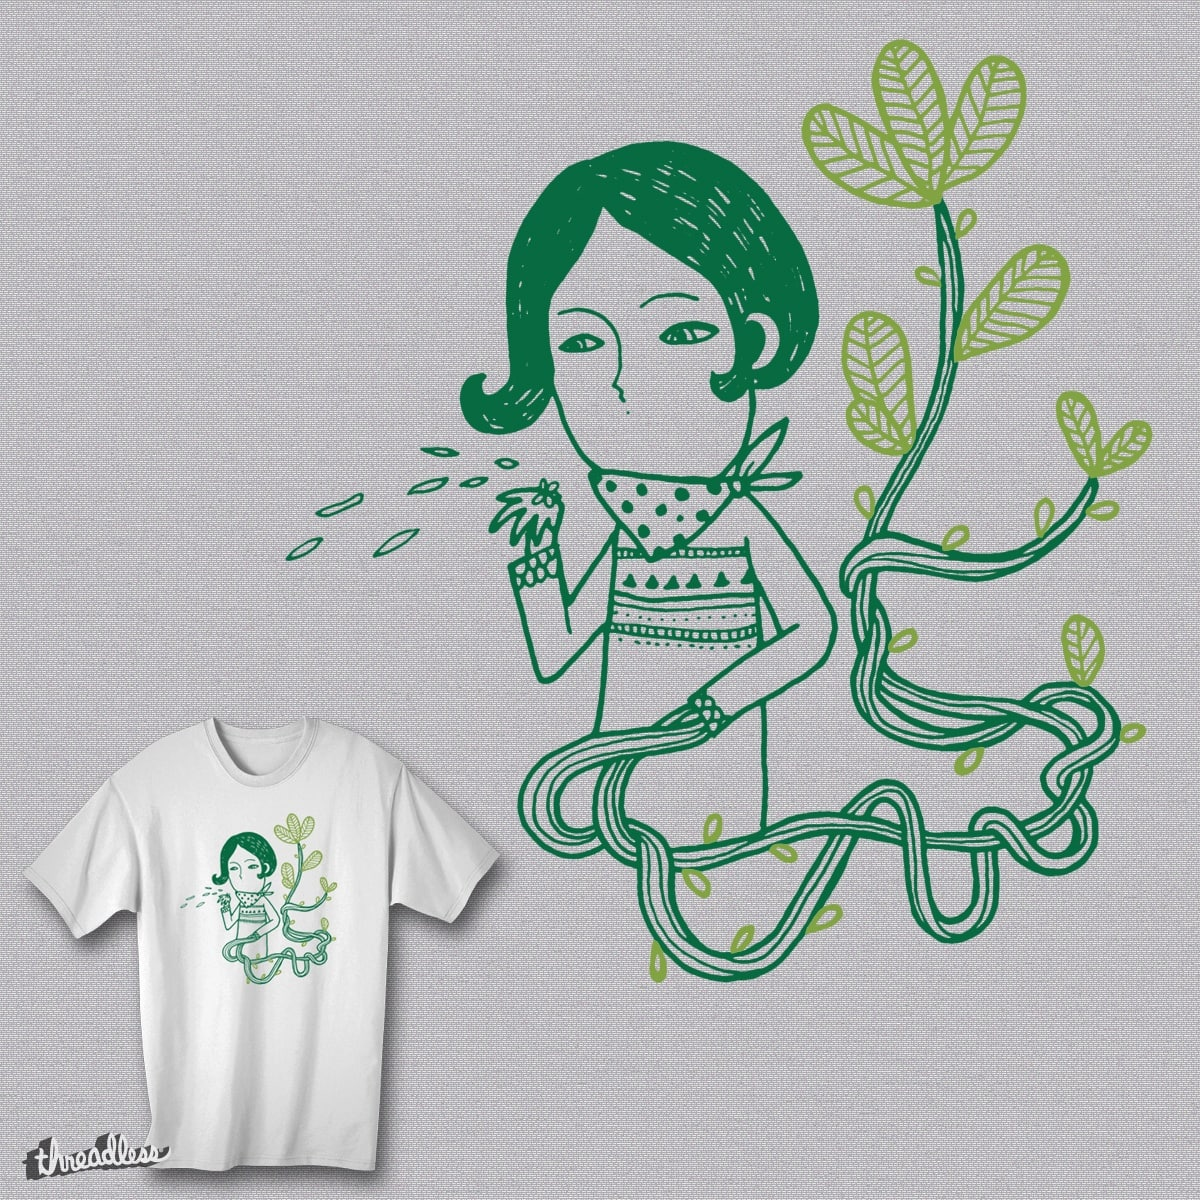 Here Comes The Green by ocmeo on Threadless